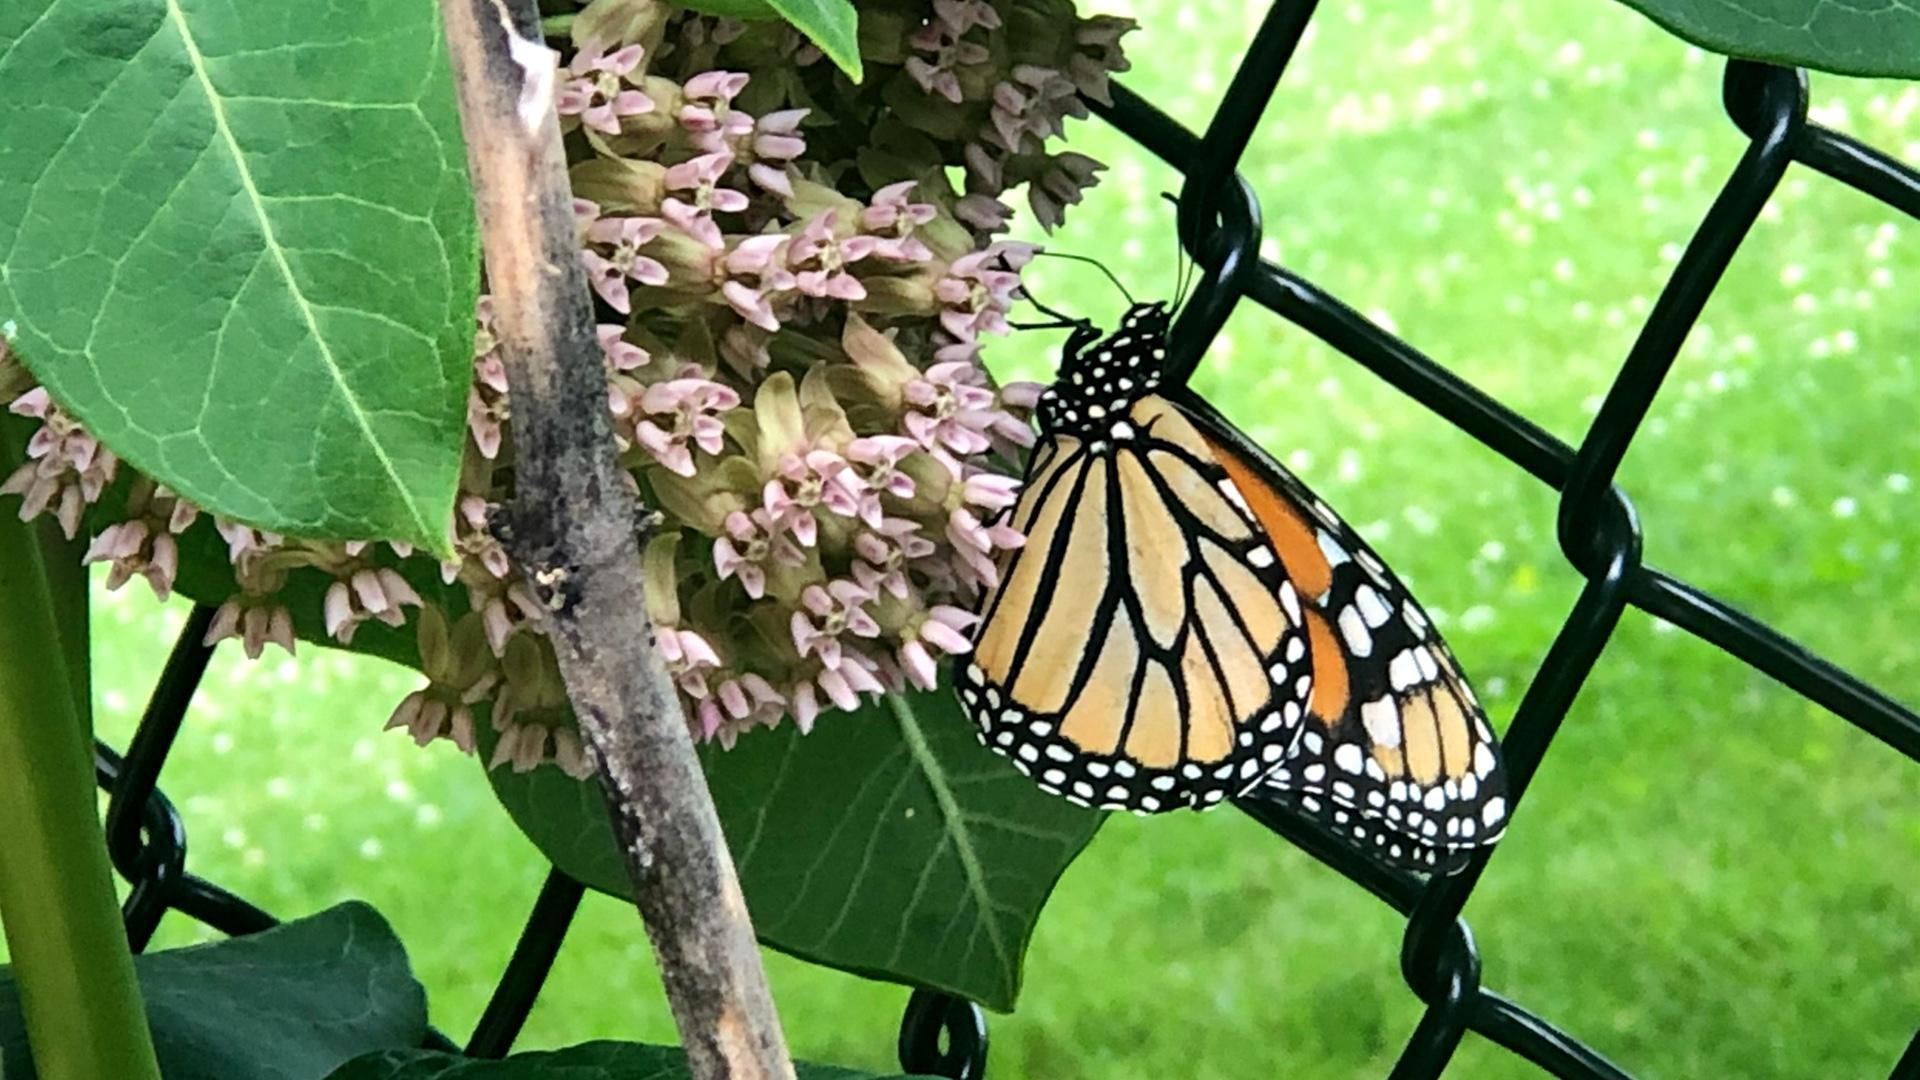 A monarch butterfly feeds on milkweed, which is the sole food source for monarch caterpillars. (Patty Wetli / WTTW News)